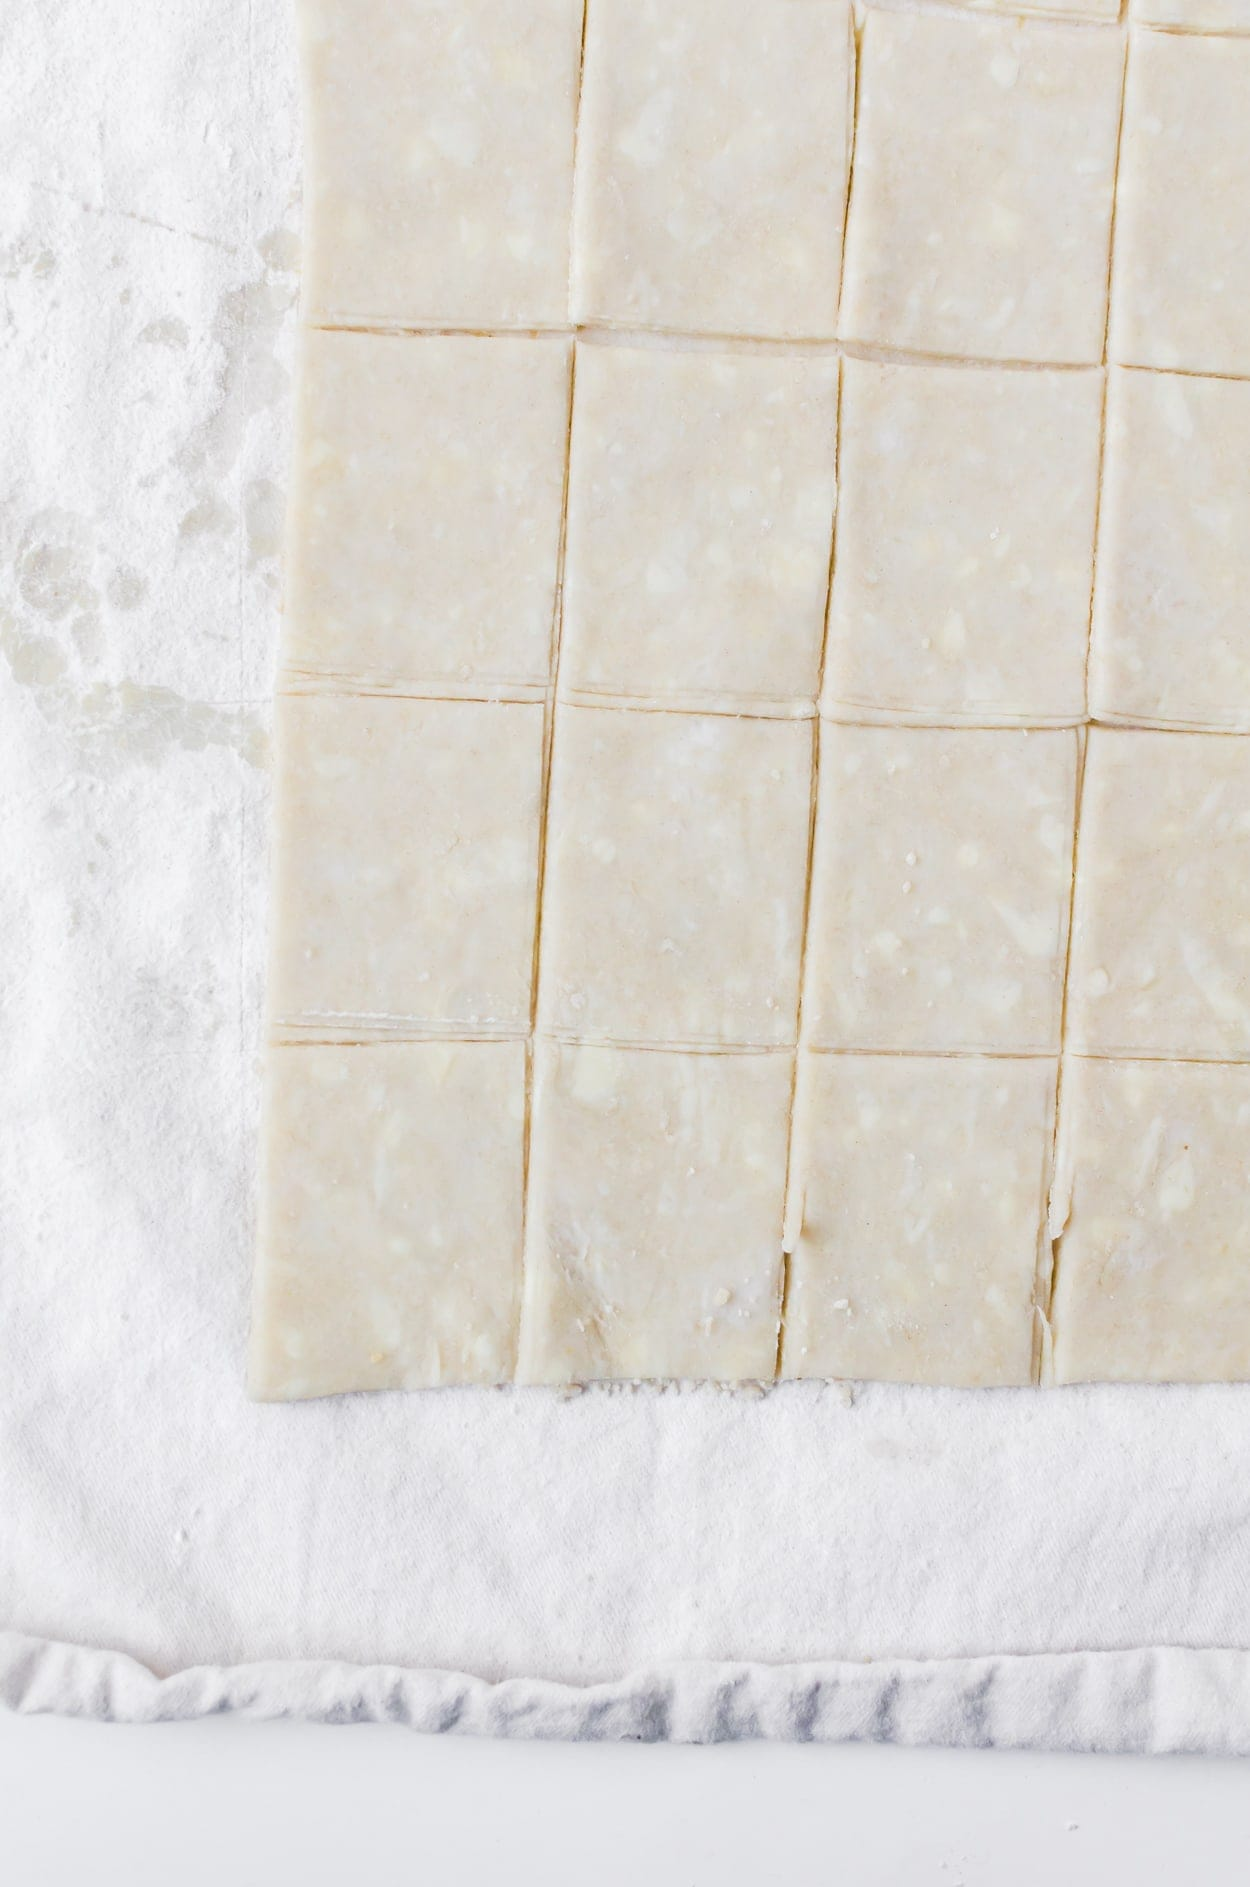 Cut pieces of dough for pop tart cereal